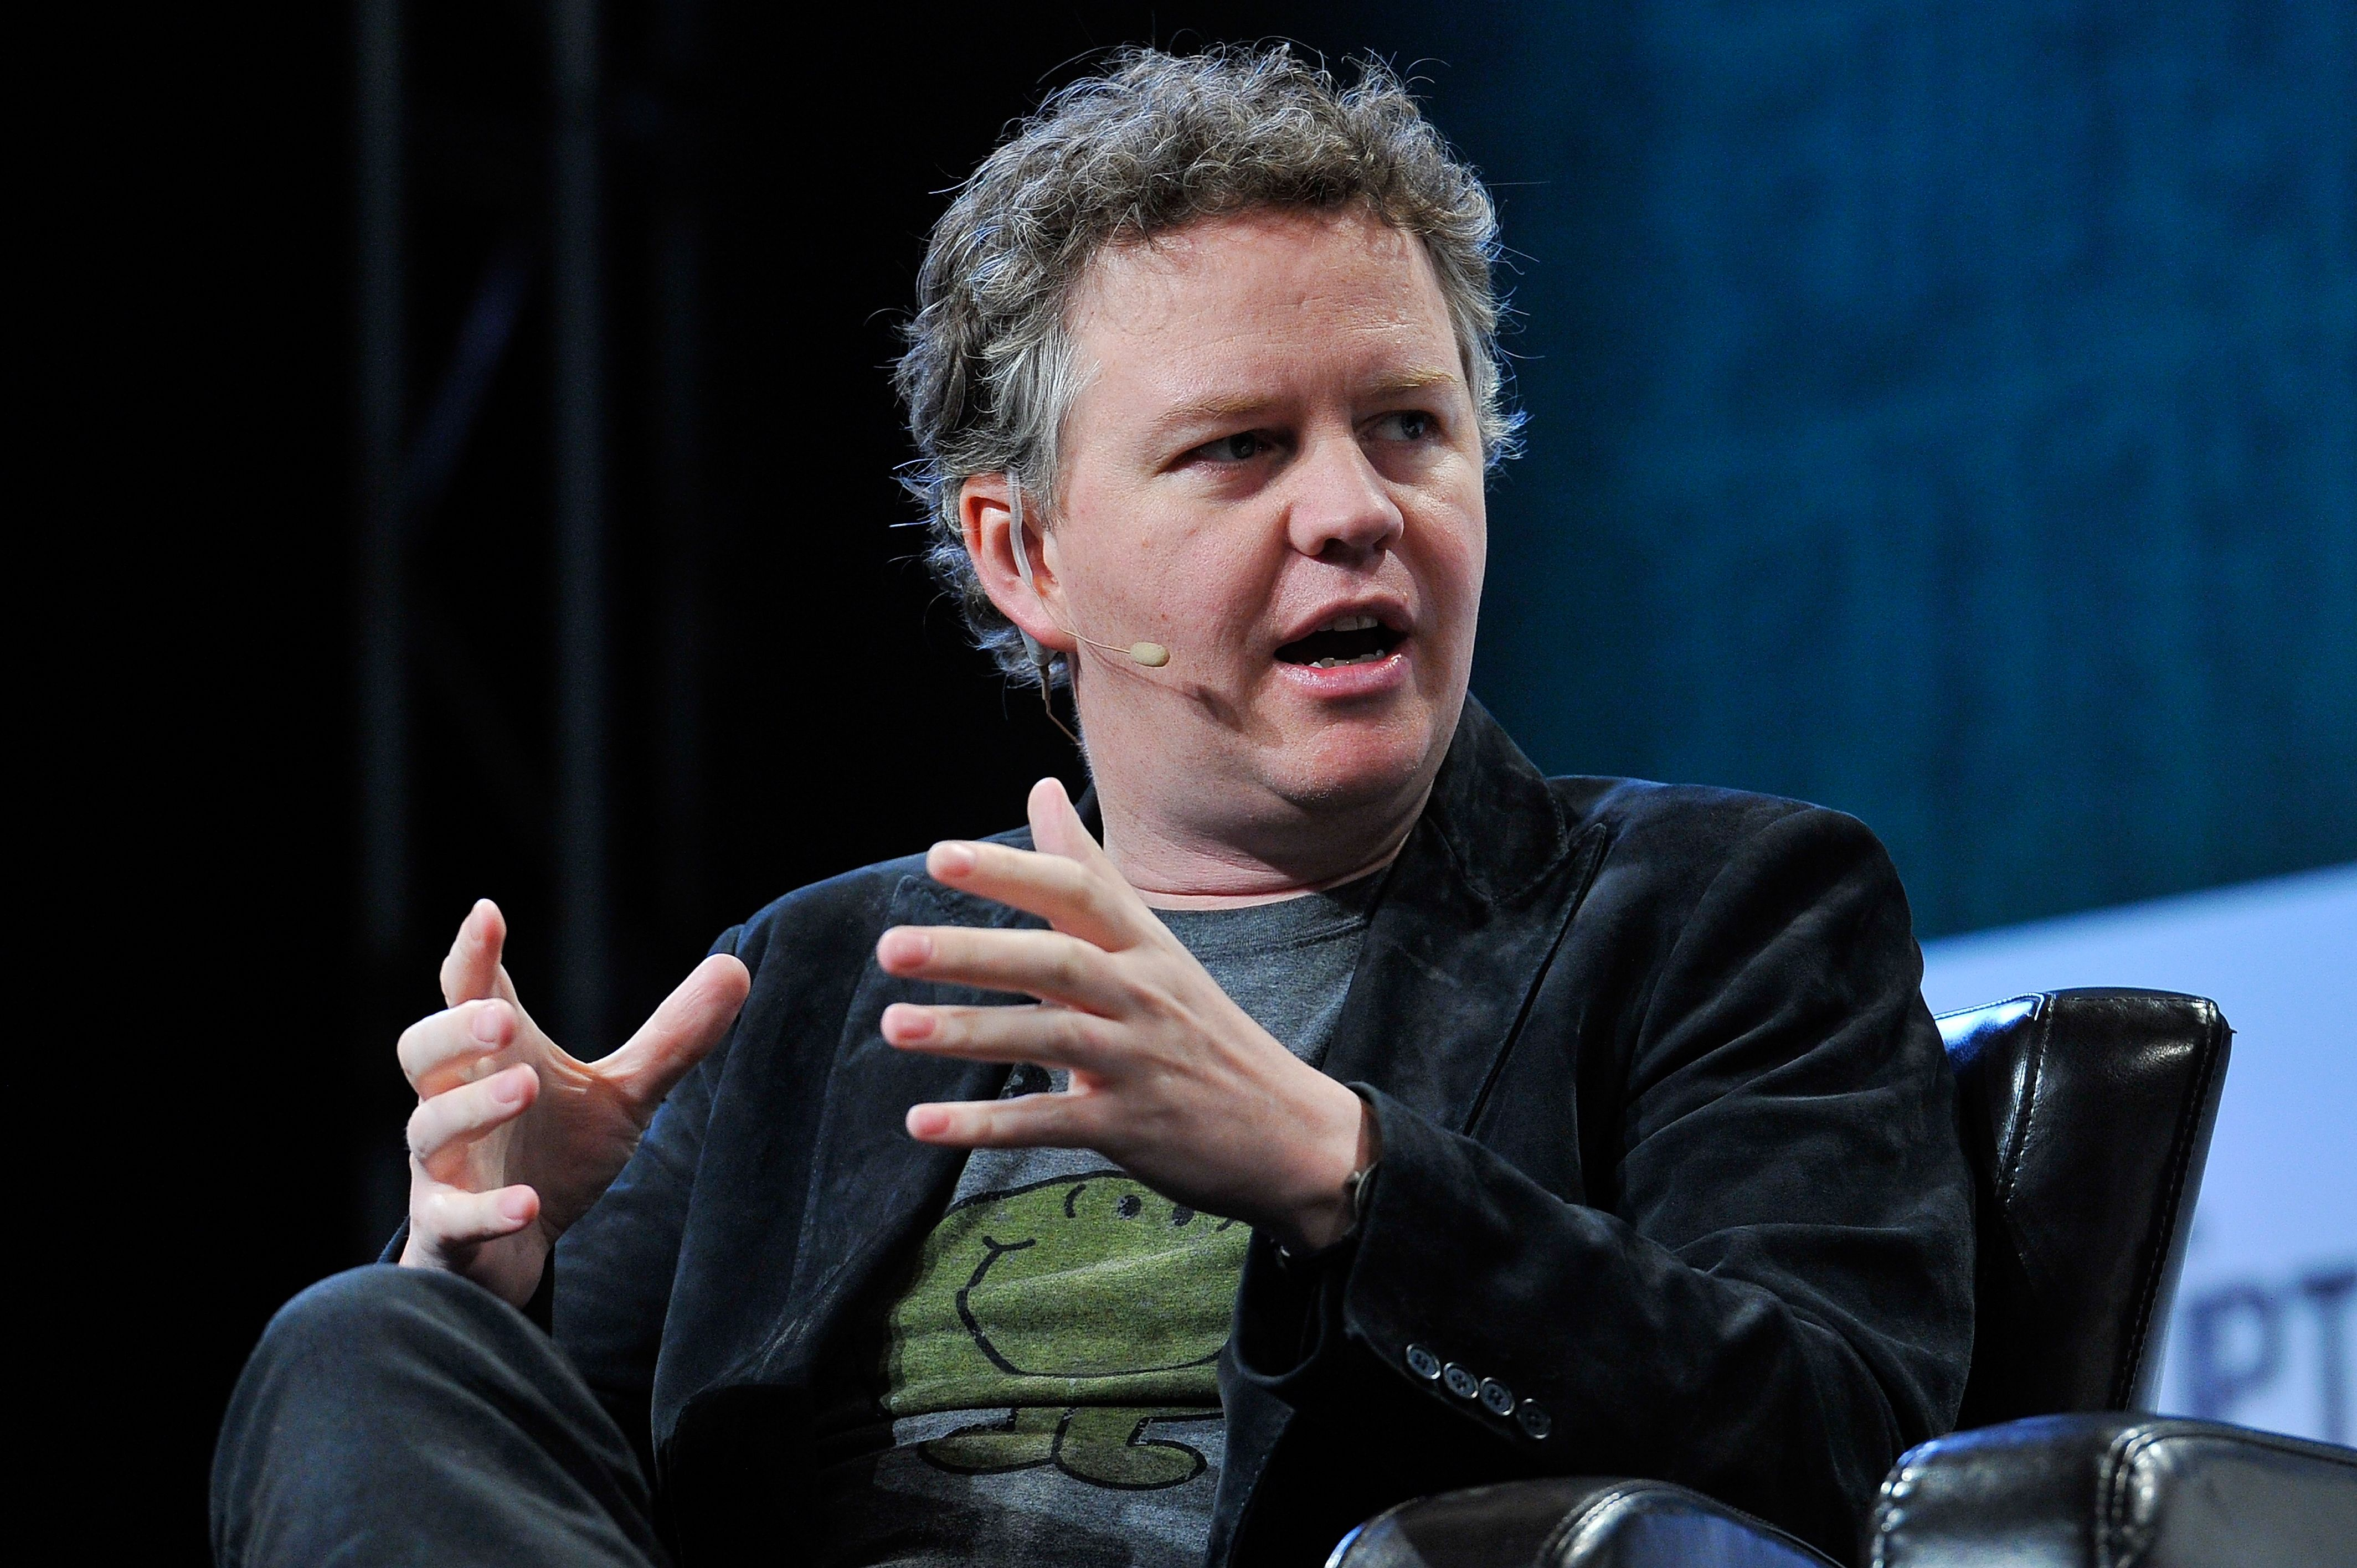 Cloudflare cuts service for online forum 8chan after El Paso shooting